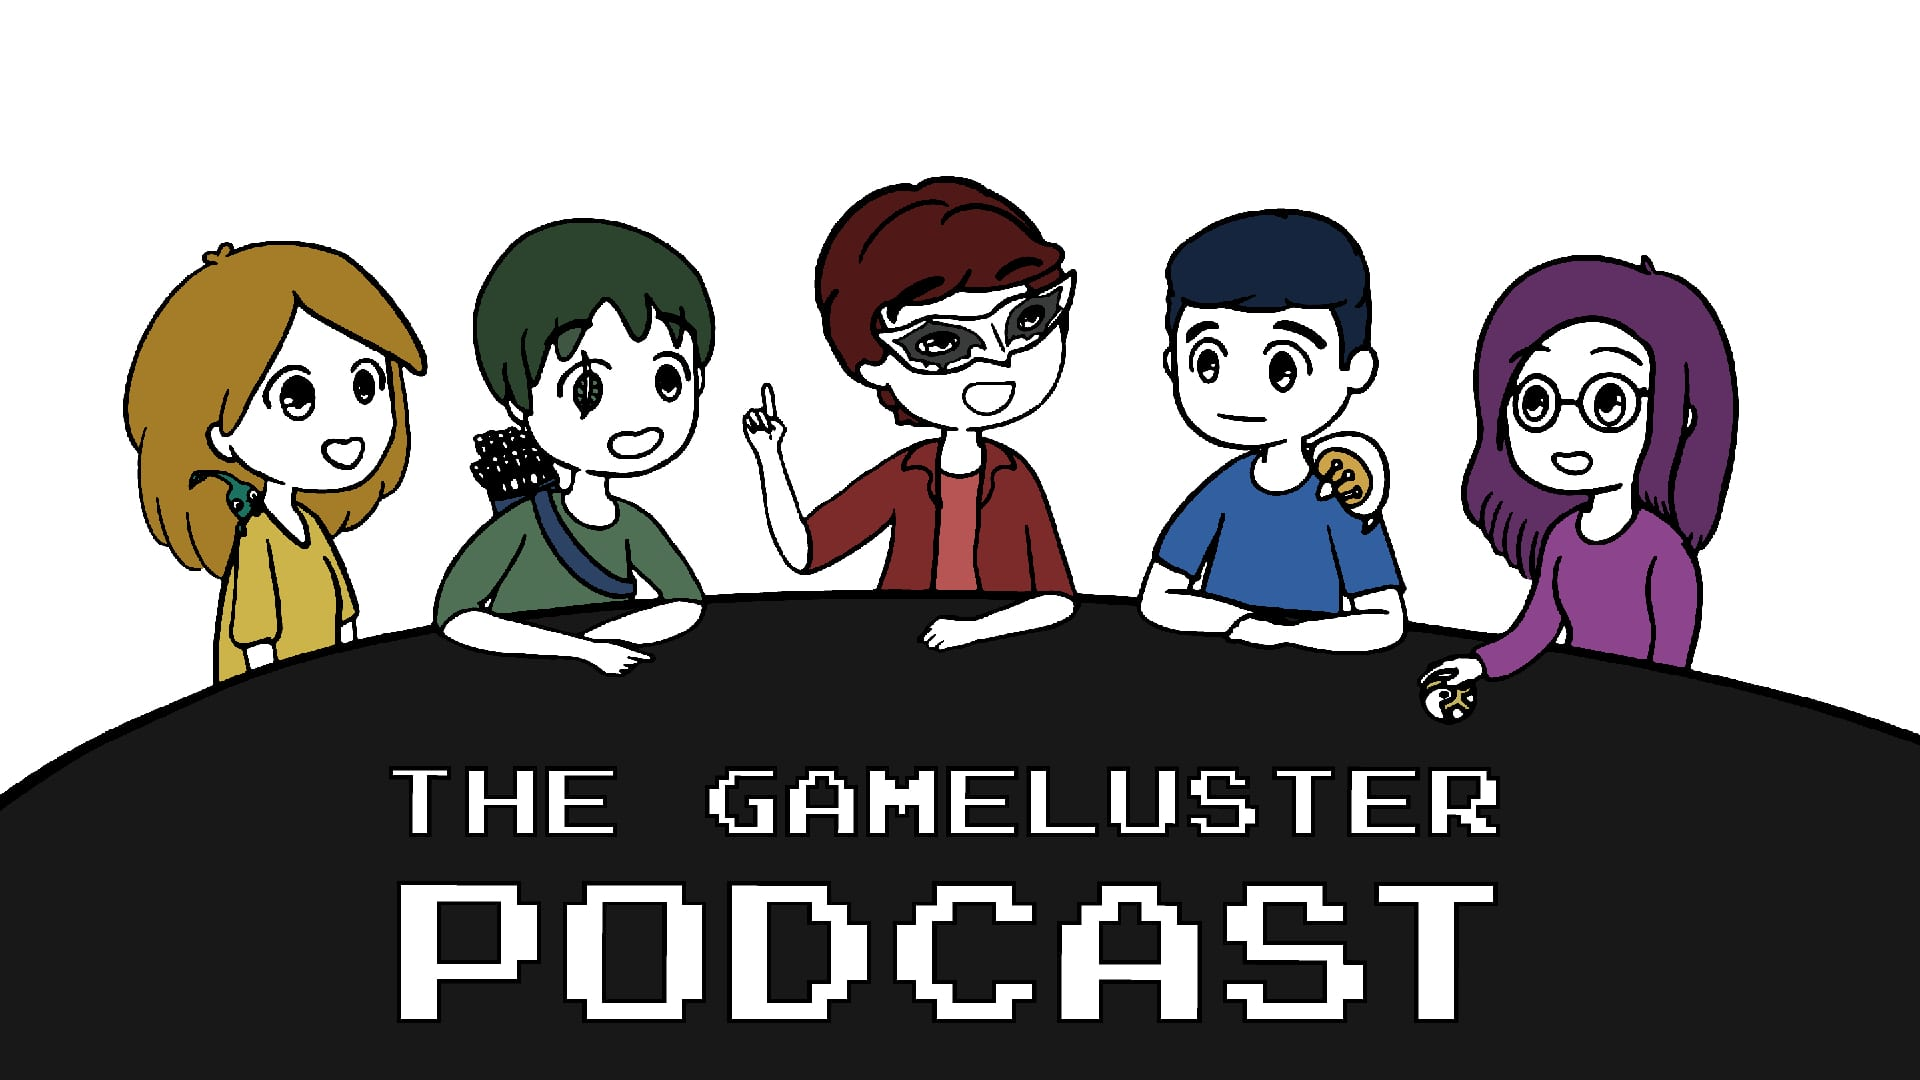 The GameLuster Podcast art, by Christine McGahhey (featured image)